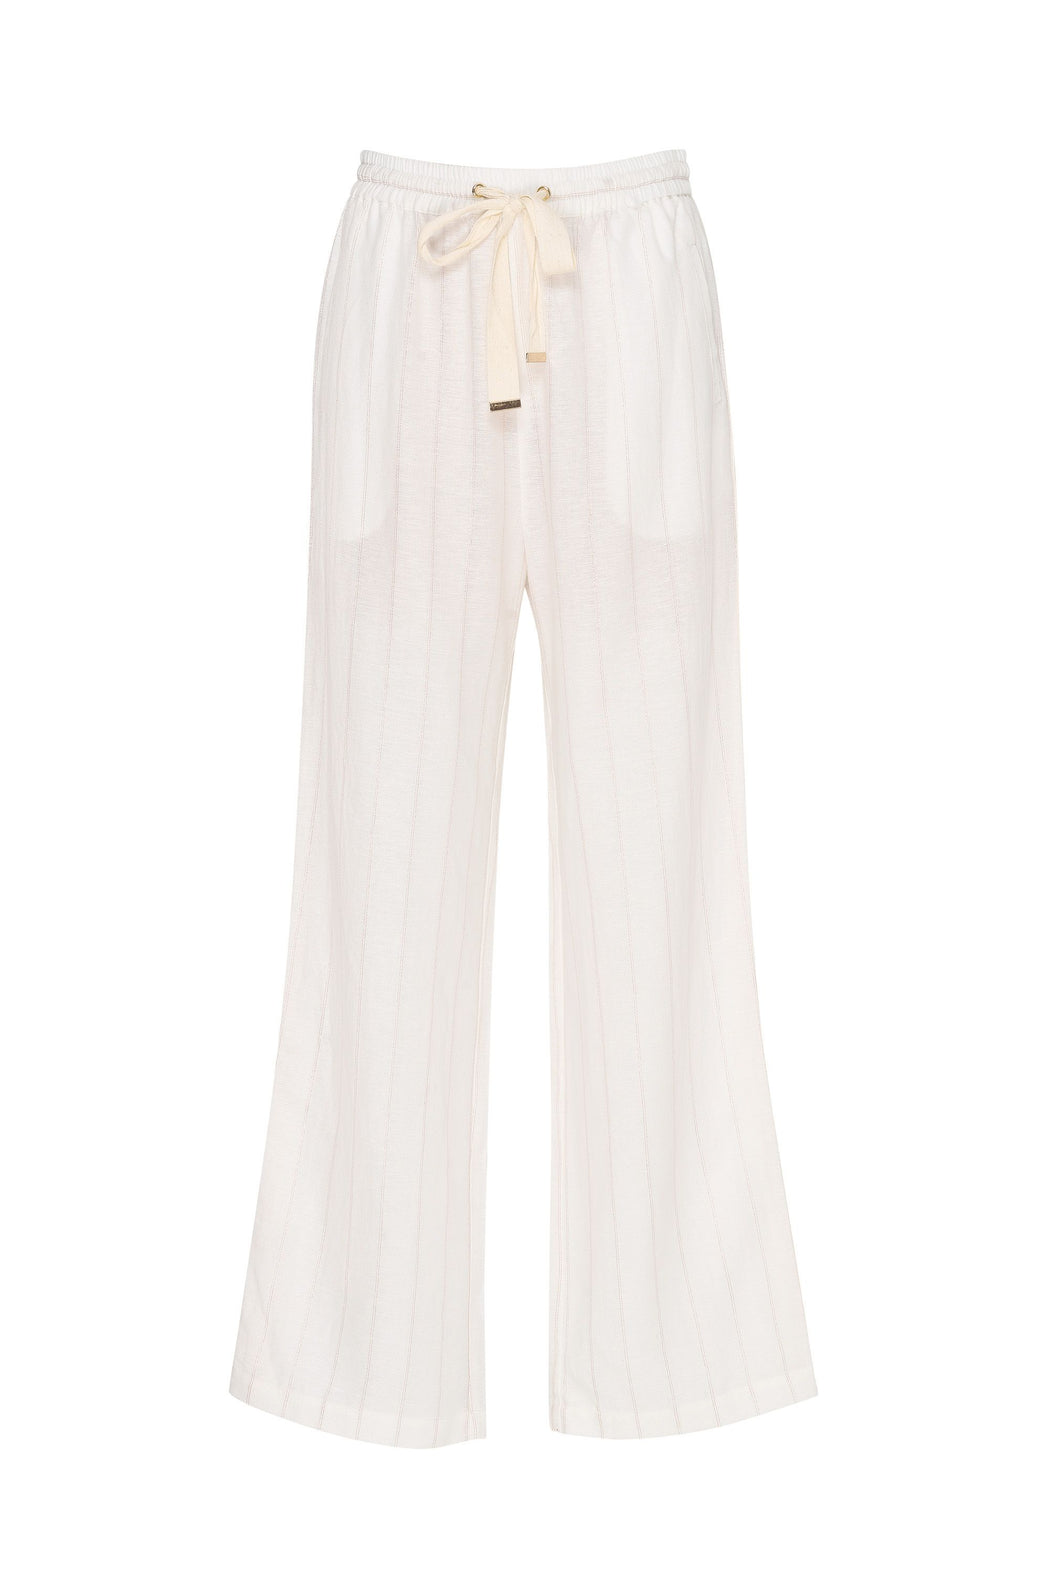 Loobies Story Inca Pant Creme/Rose Gold | Shop at Wallace and Gibbs NZ